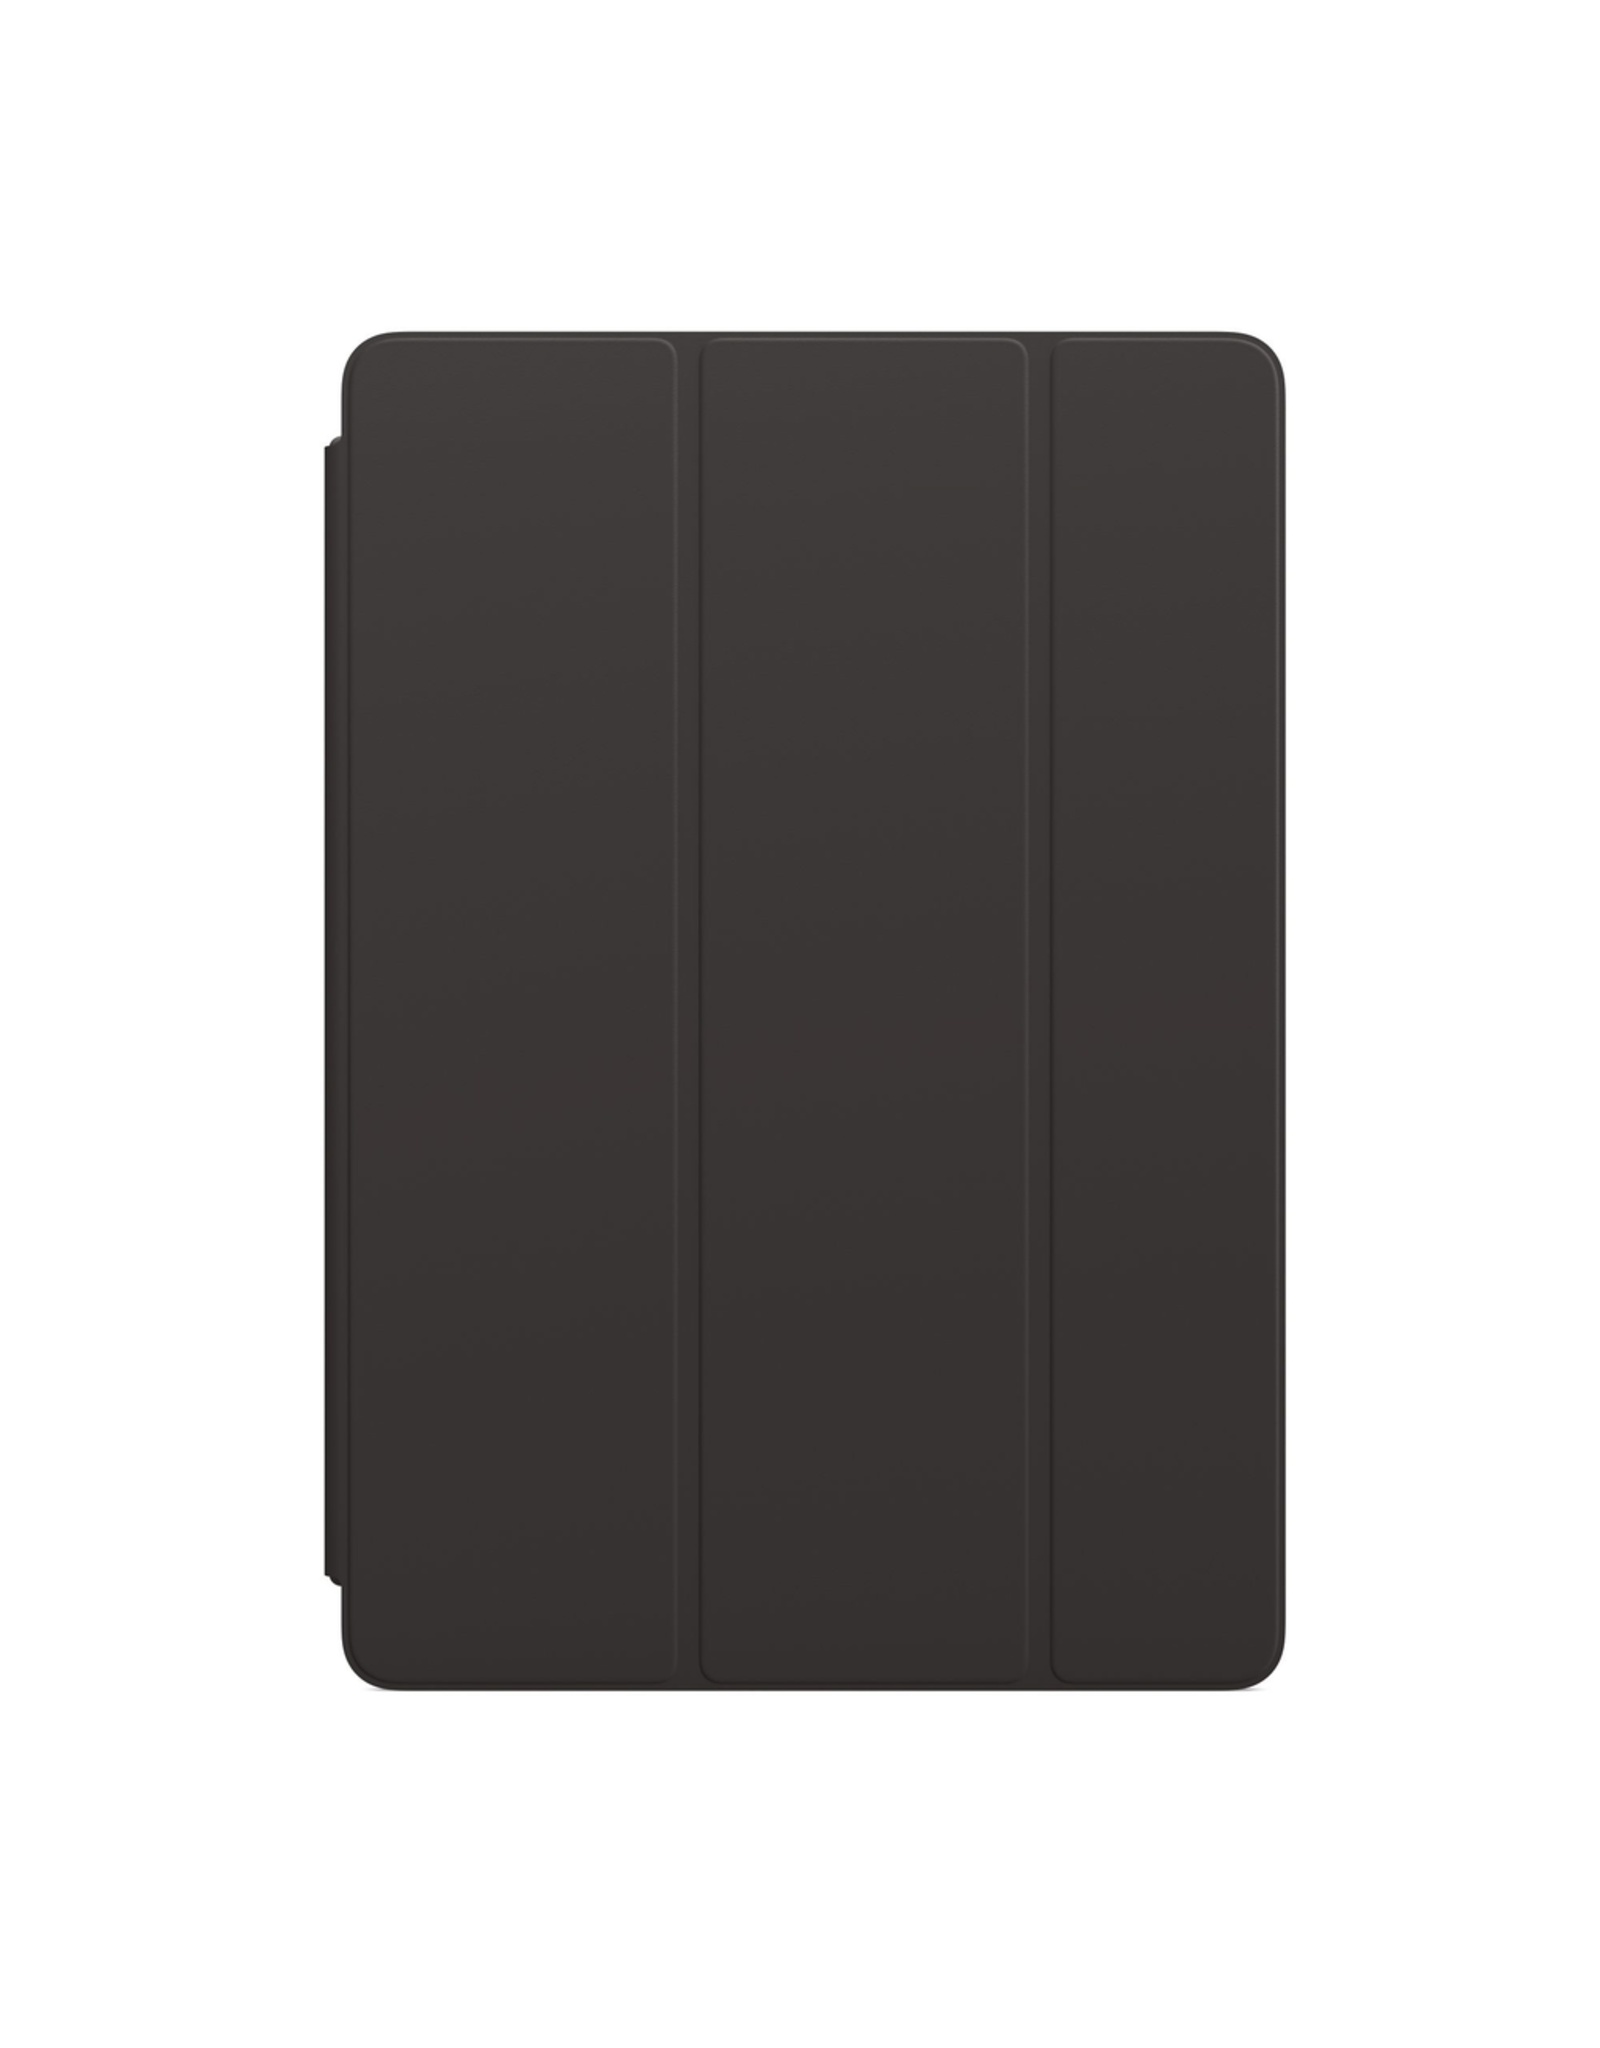 Apple Apple Smart Cover for iPad (7th generation) and iPad Air (3rd generation) - Black